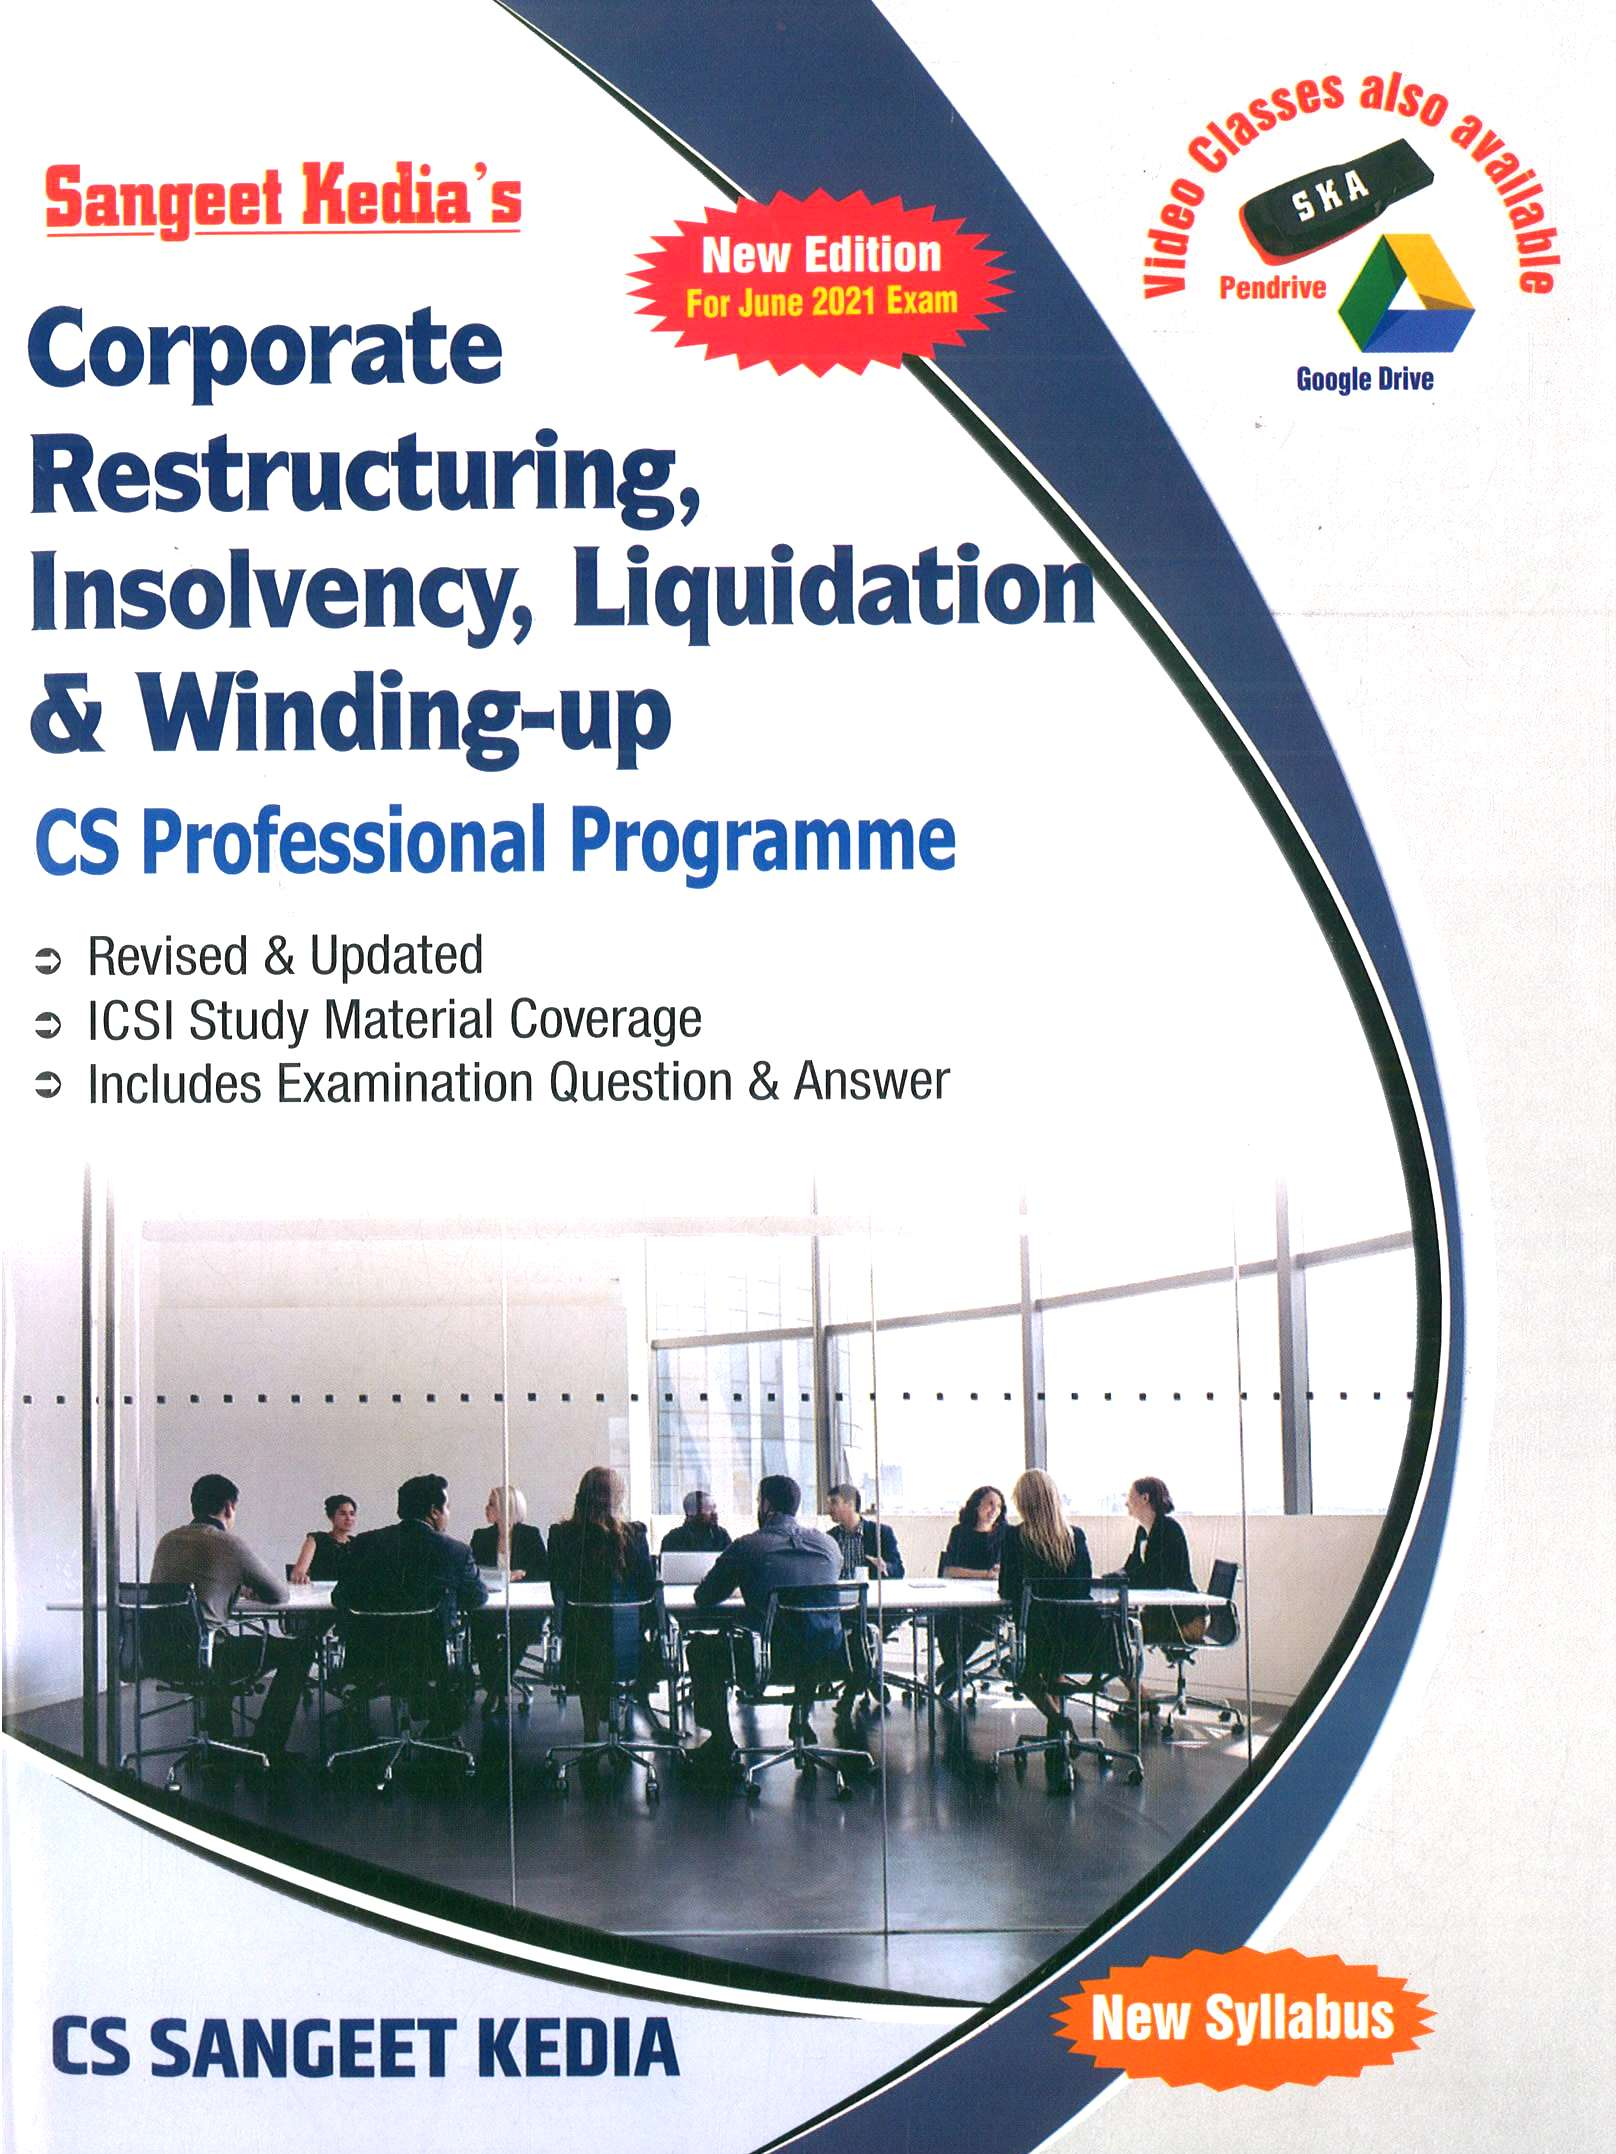 Pooja Law House Corporate Restructuring Valuation and Insolvency For CS Professional New Syllabus By Sangeet Kedia (Pooja Law House Publishing) 2021